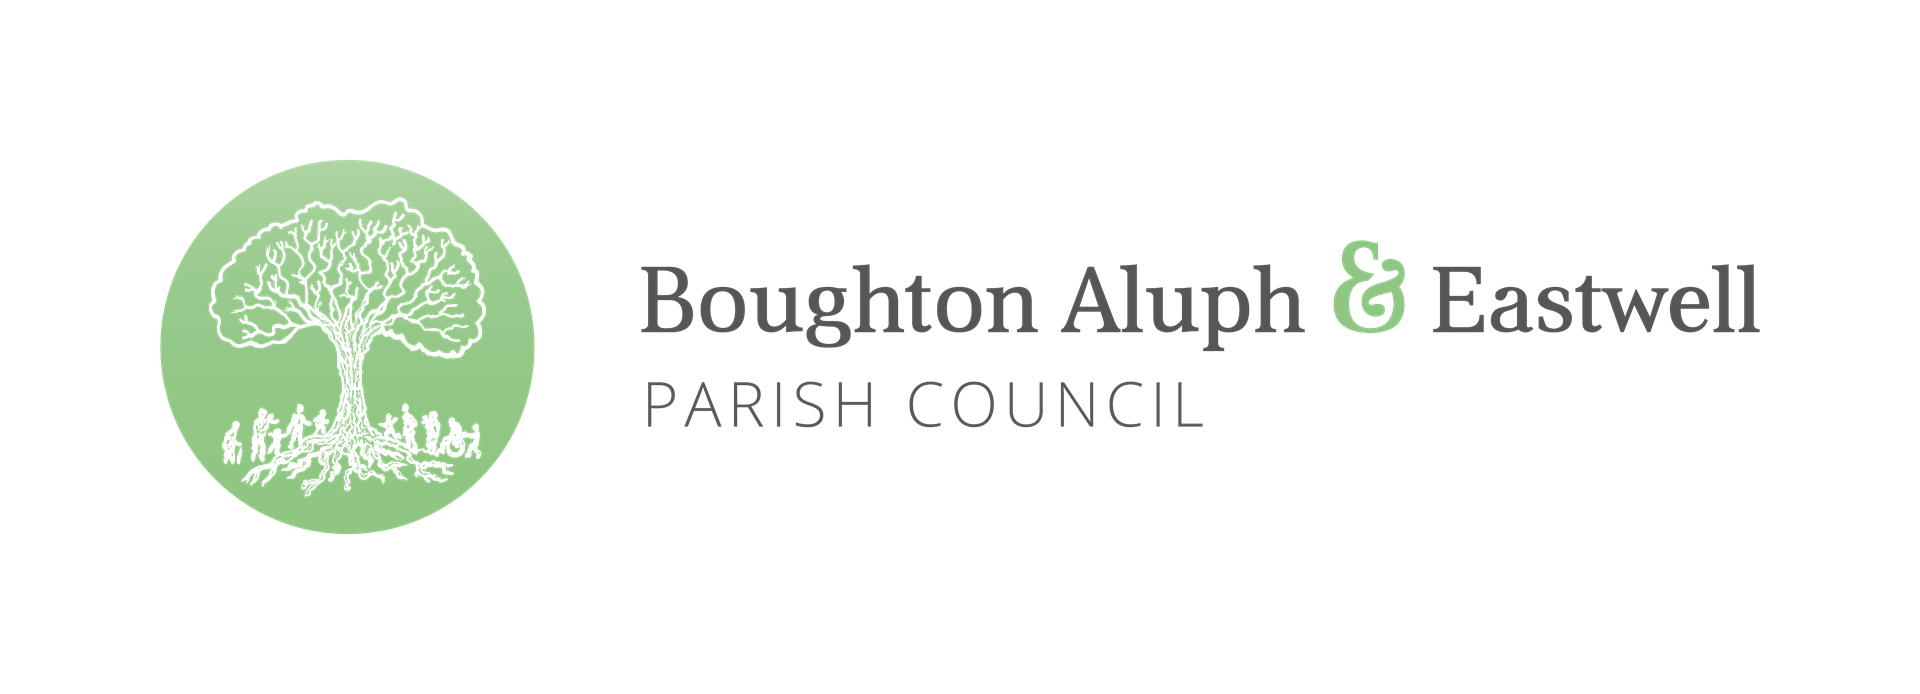 Boughton Aluph & Eastwell Parish Council Home